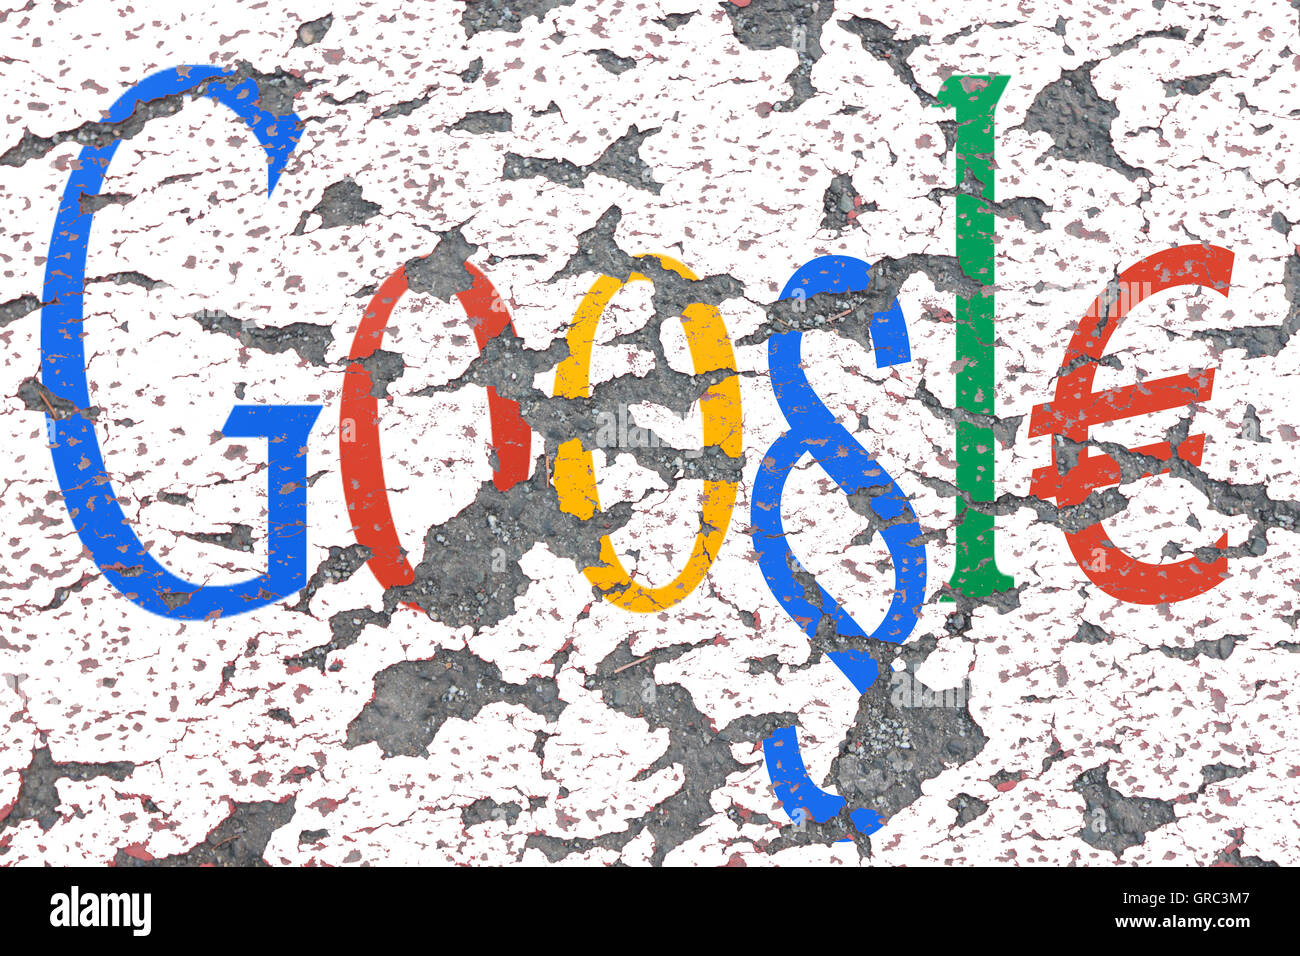 Modified Google Sign On An Eroding Wall - Stock Image